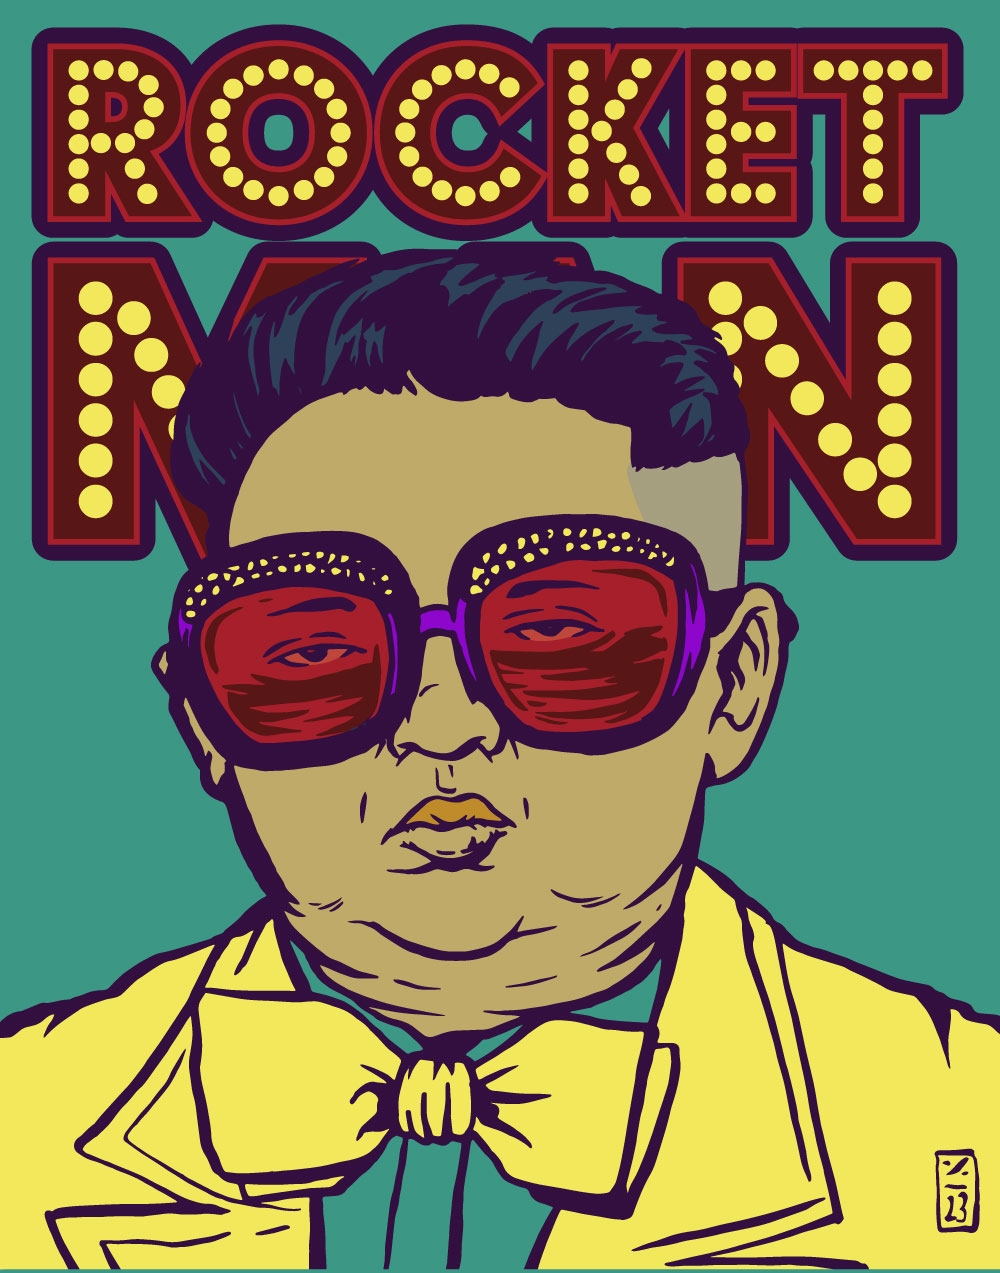 Rocket Man, North Korea - illustration - thomcat23 | ello